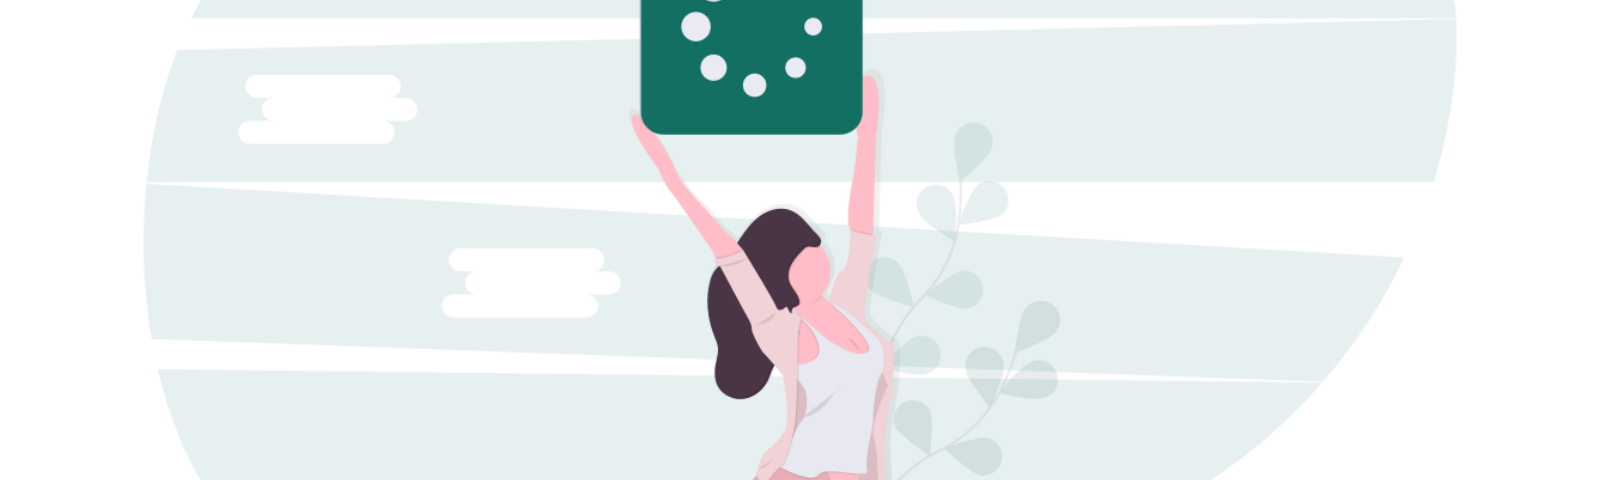 Illustration of a woman holding a loading icon above her head.